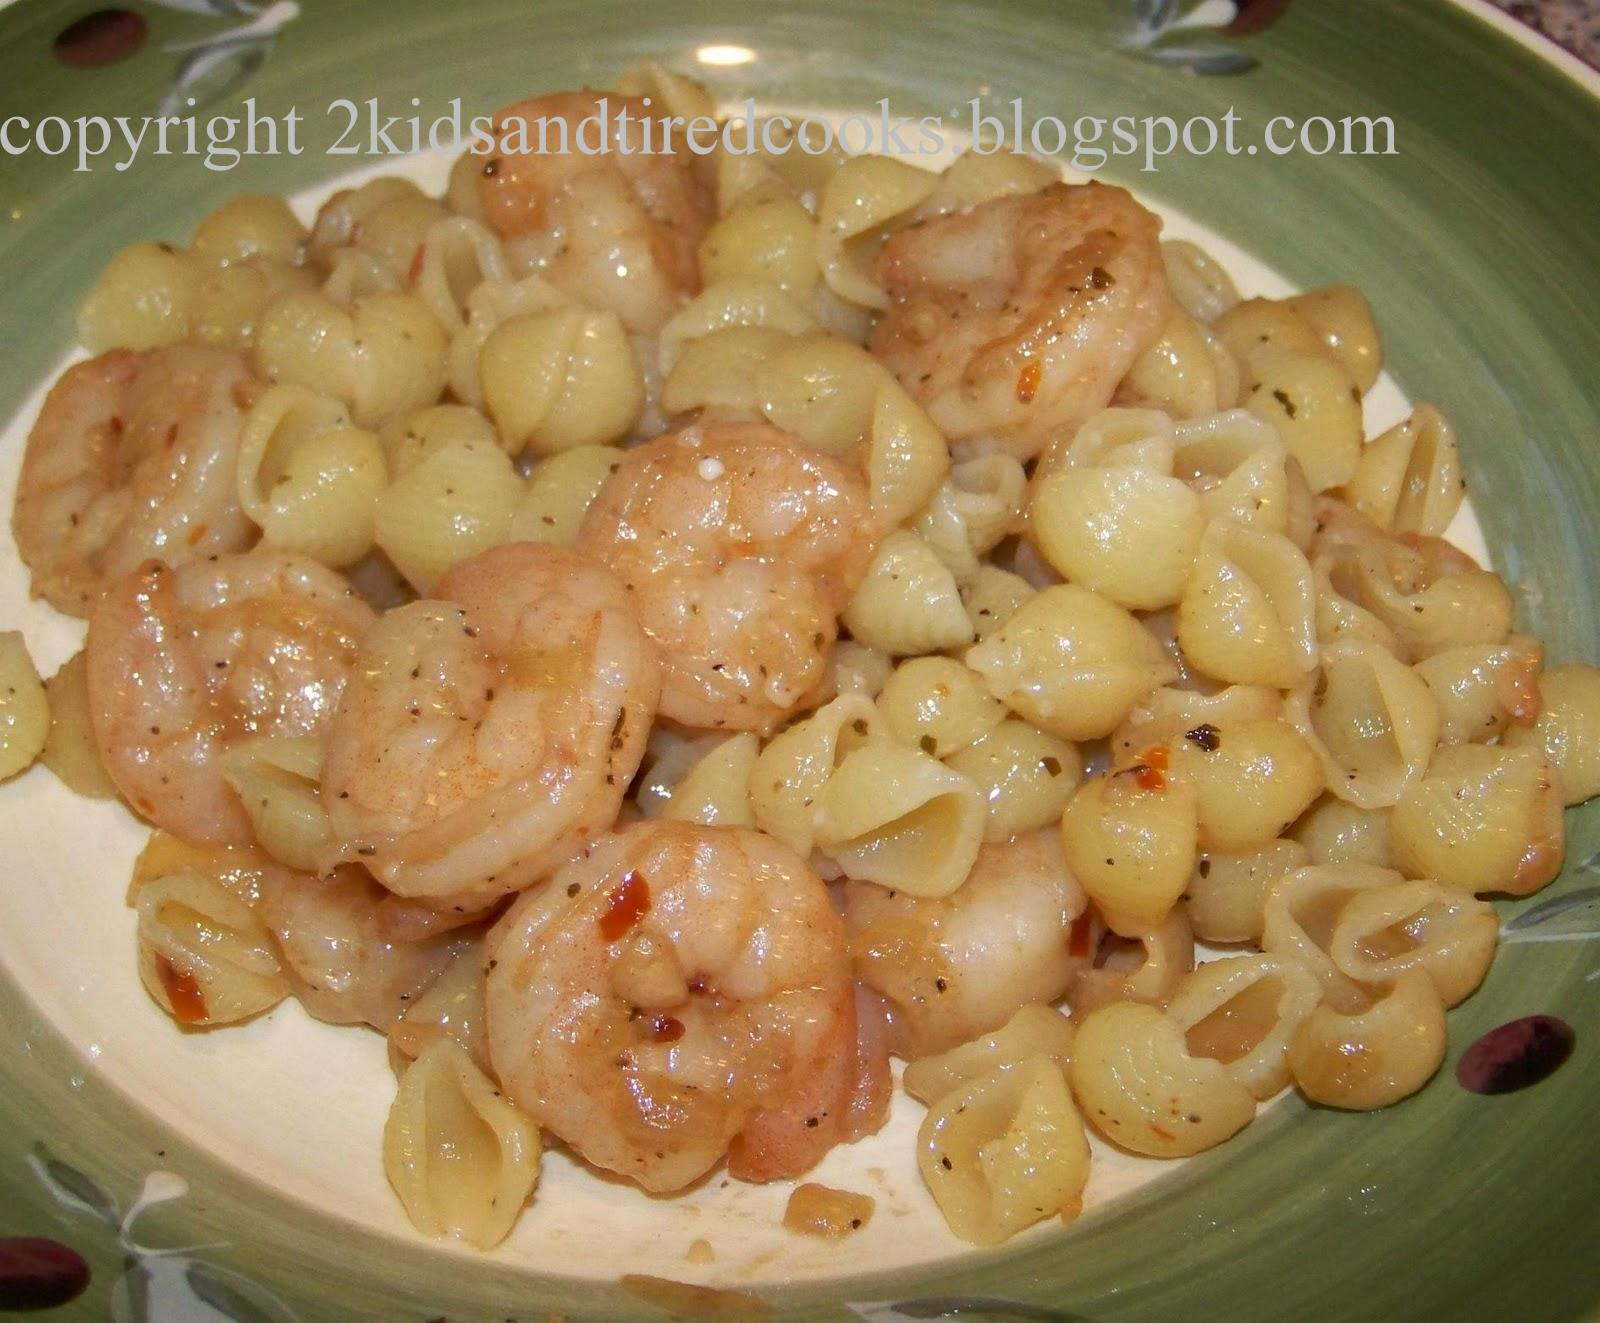 Kids and Tired Cooks: Shrimp Scampi